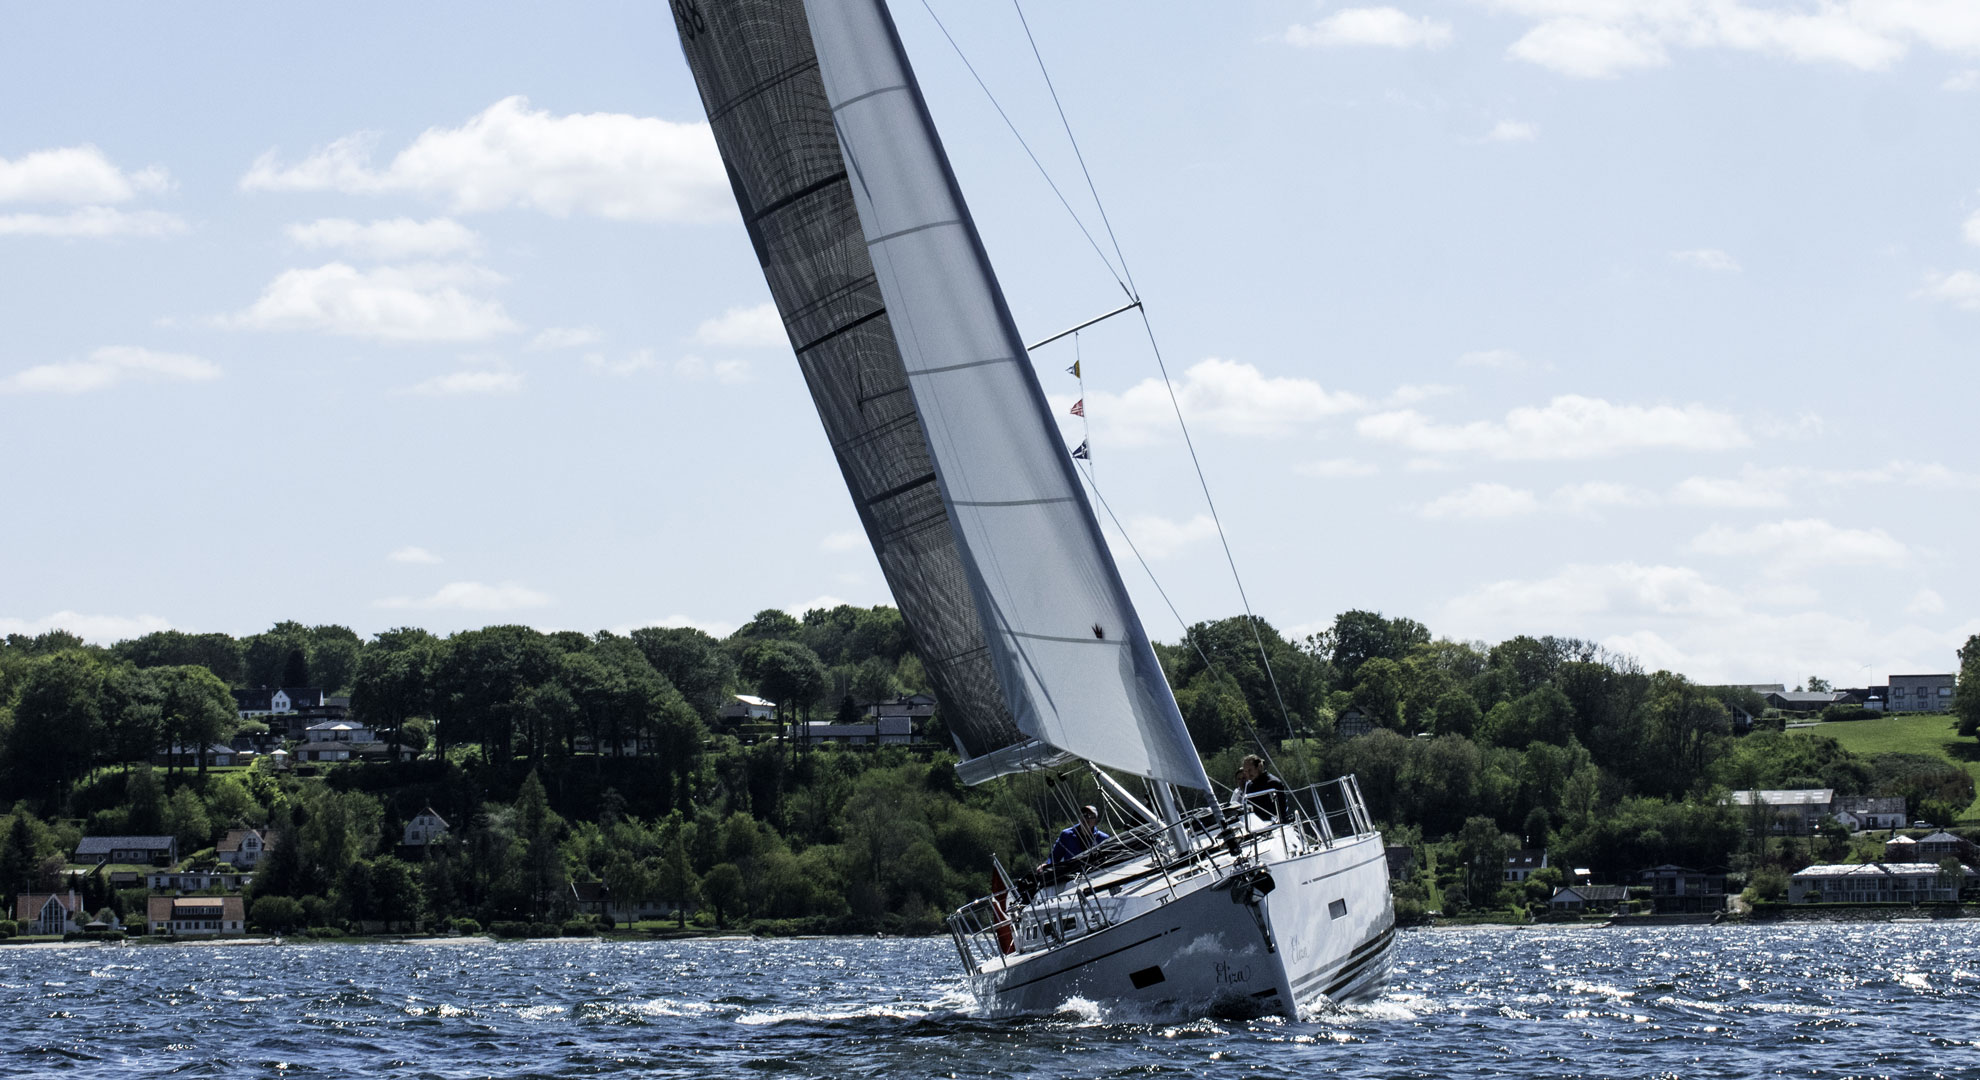 New sail - wing jib - for heavier winds